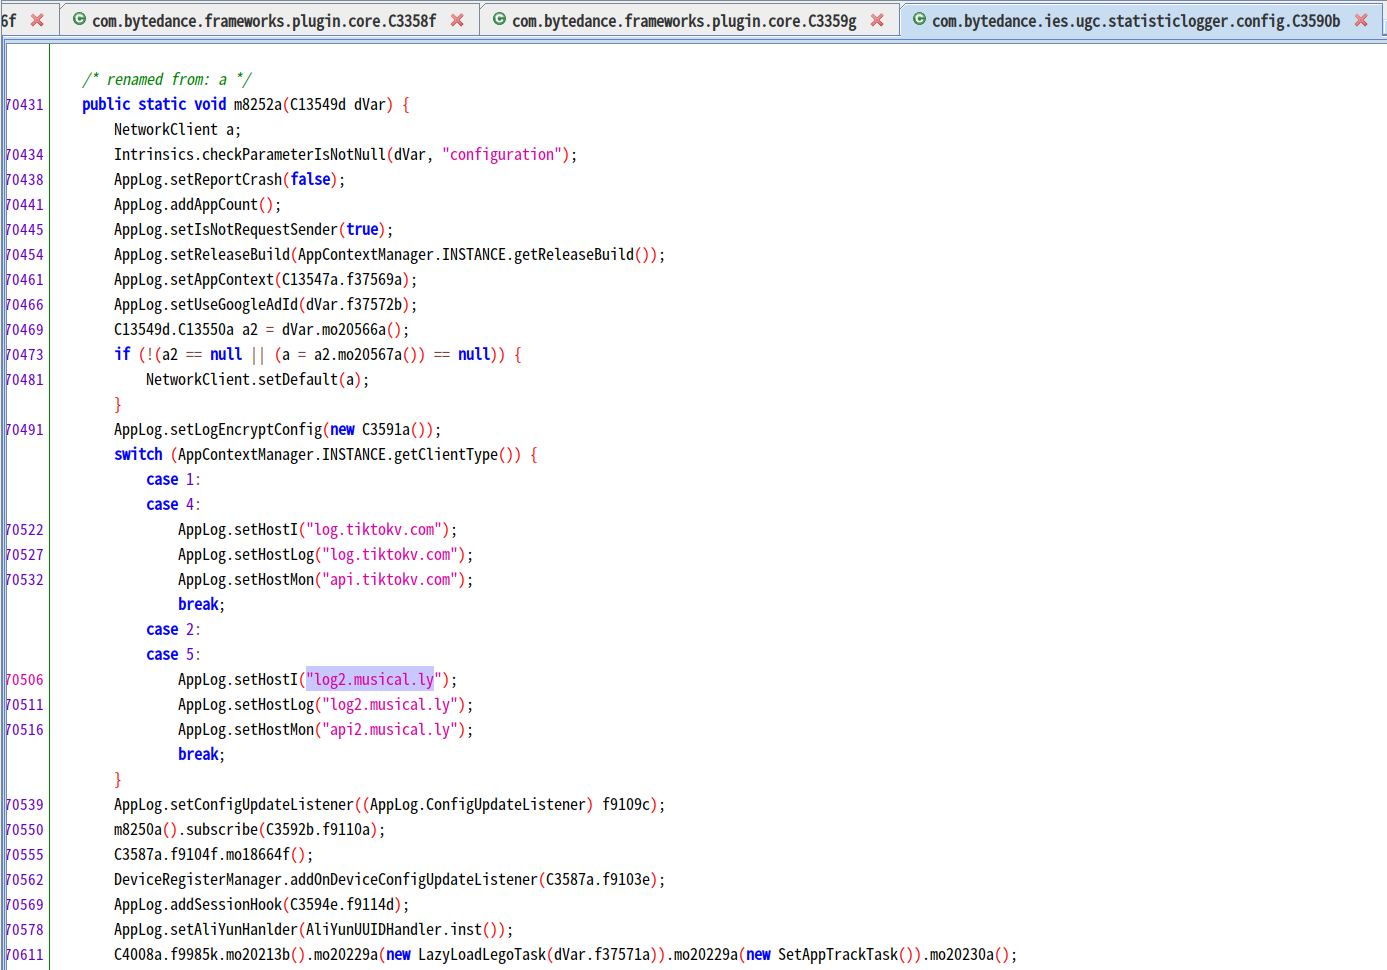 Screengrab of source code of Douyin